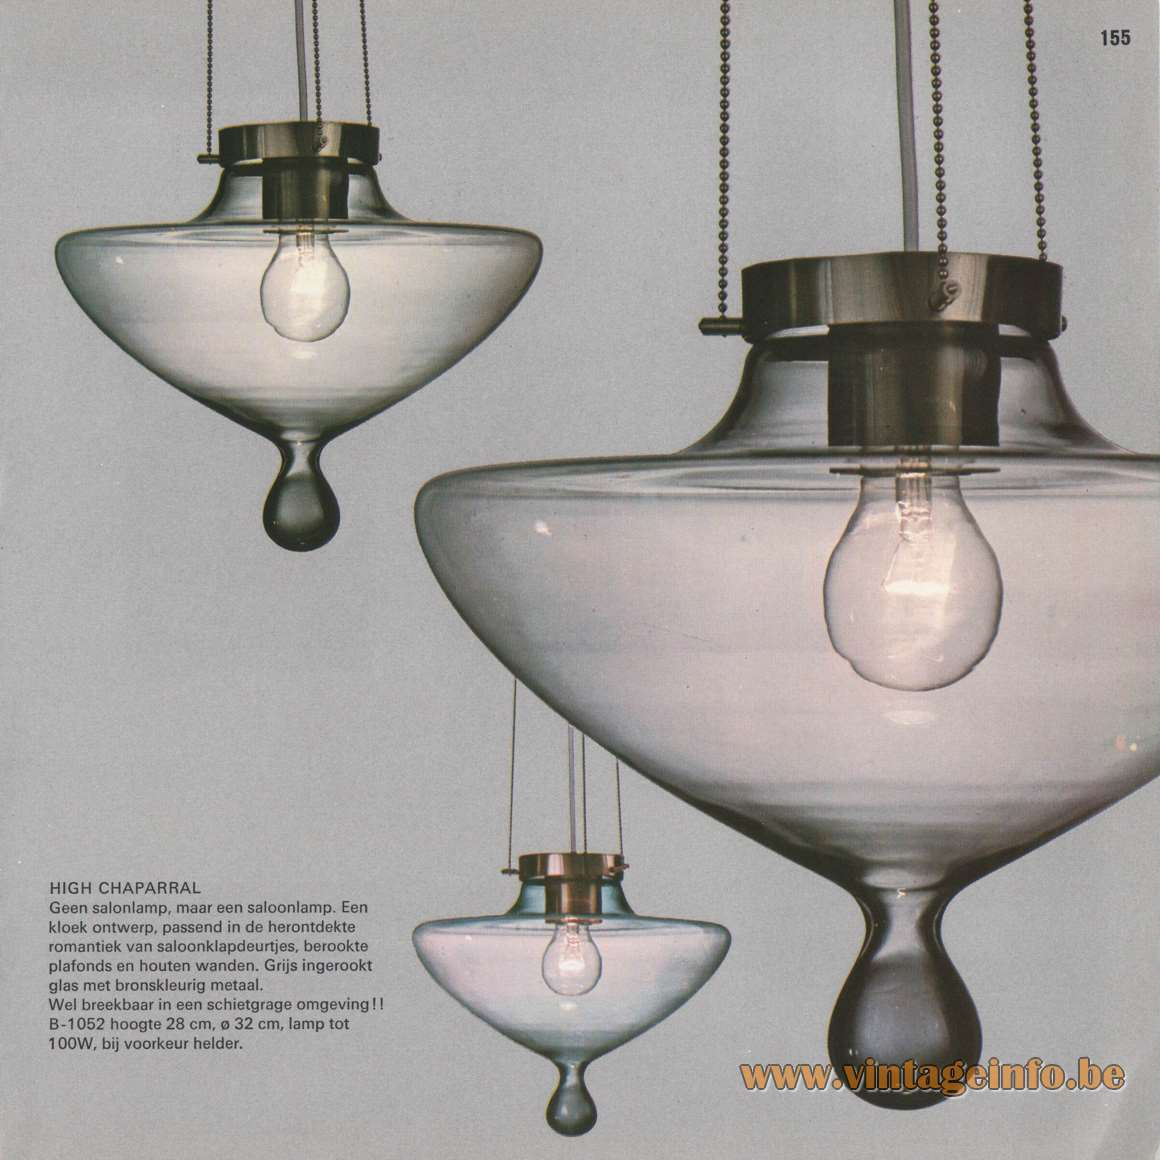 1970s Florentine Droplet Chandelier - Raak Catalogue 8 - 1968 - High Chaparral Pendant Light